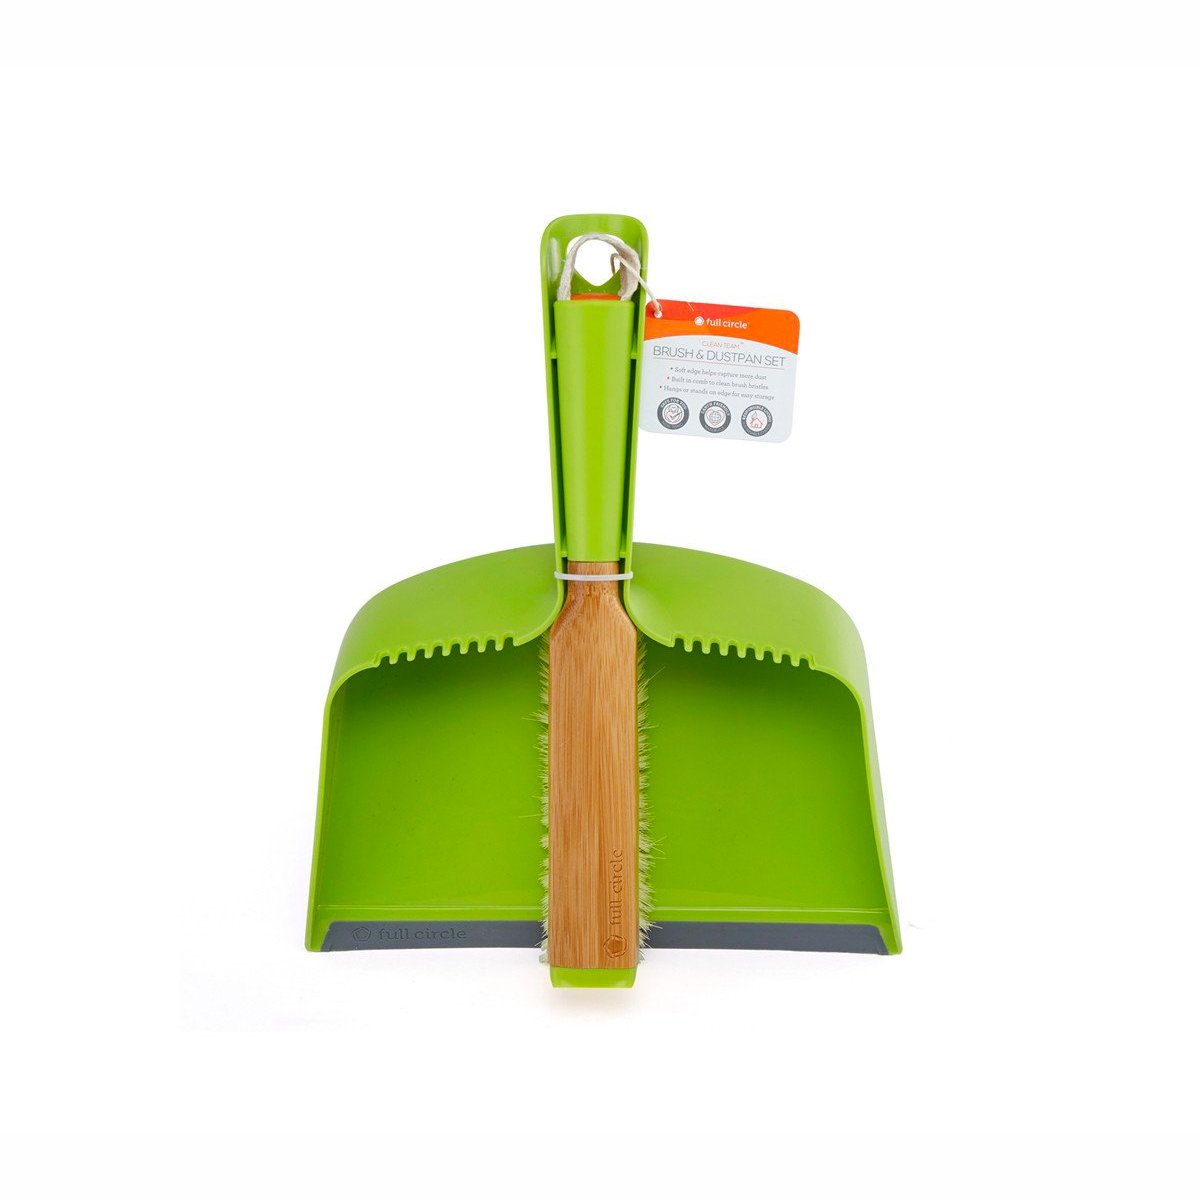 Full Circle Clean Team Dustpan and Brush Set Full Circle Household Cleaning Supplies at Little Earth Nest Eco Shop